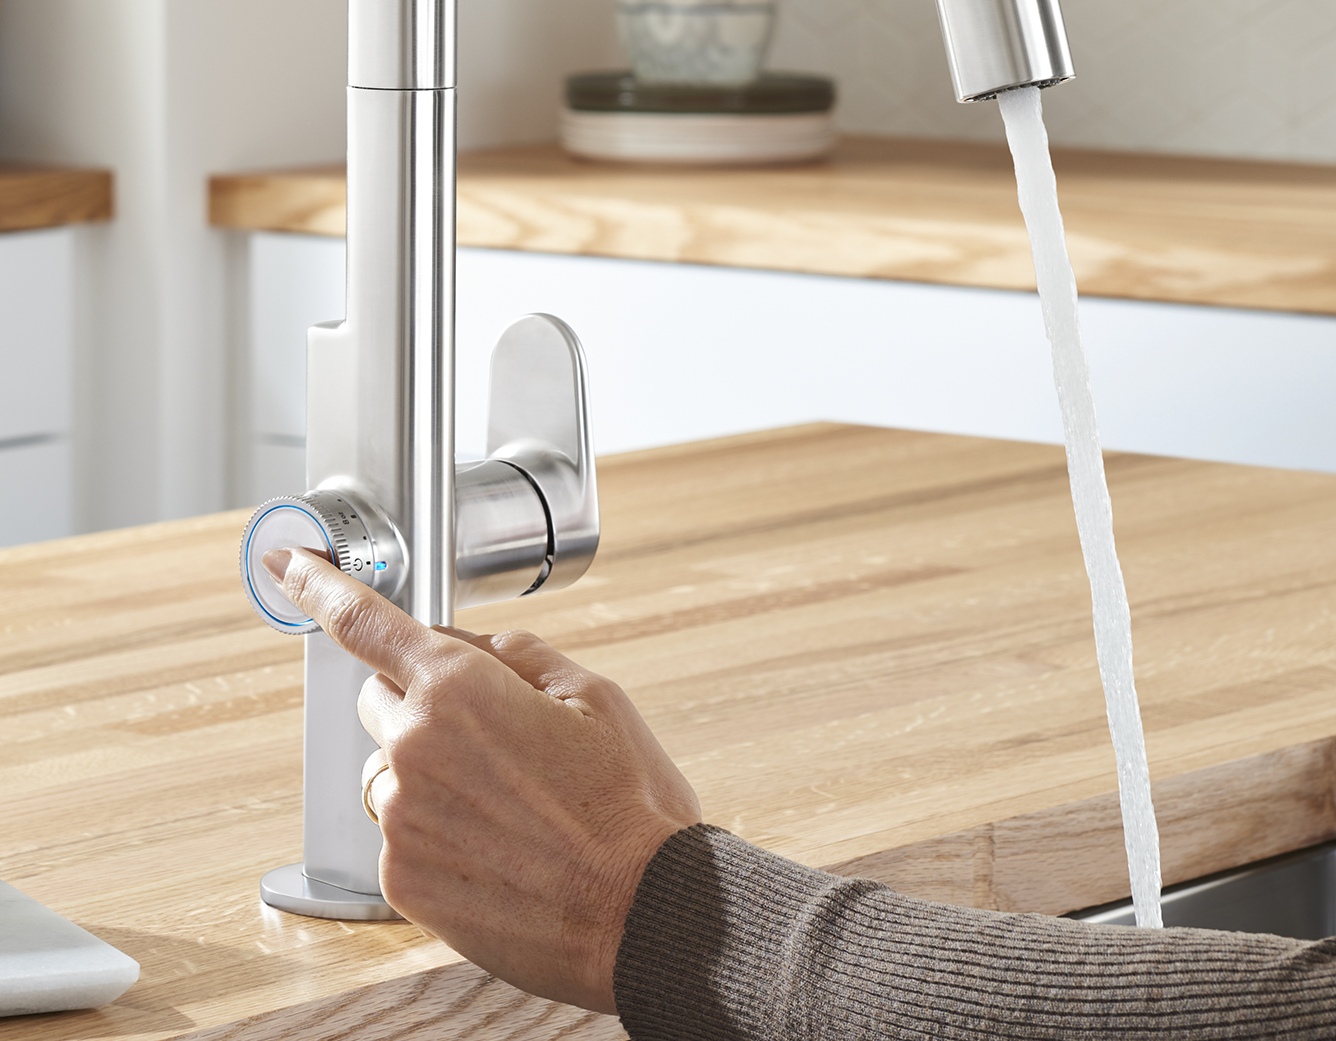 Touch On Kitchen Faucets Deliver An Adjustable Set Volume Of Water Ditch Your Measuring Cup For The B Touch Kitchen Faucet Kitchen Faucet Best Kitchen Faucets